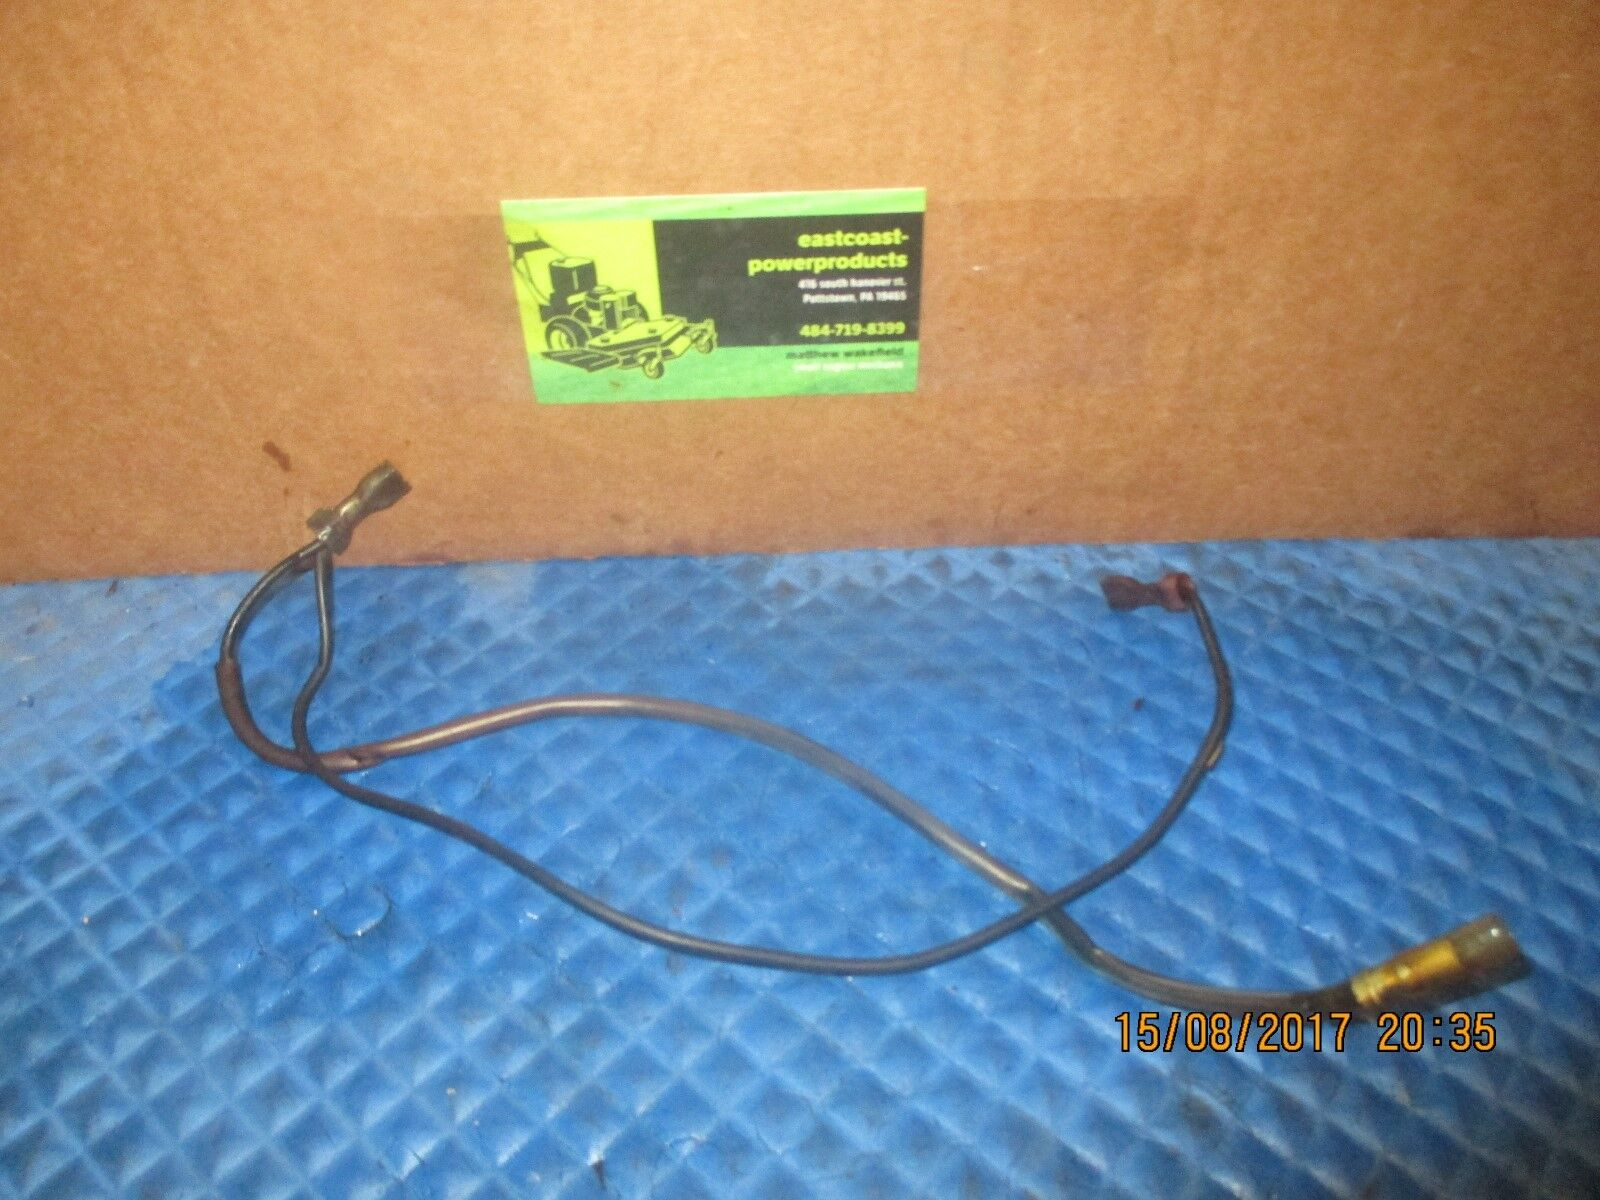 KAWASAKI ENGINE Fs481v 16HP WIRE HARNESS DEERE EXMARK SCAG WALK BEHIND 1 of  1Only 1 available See More